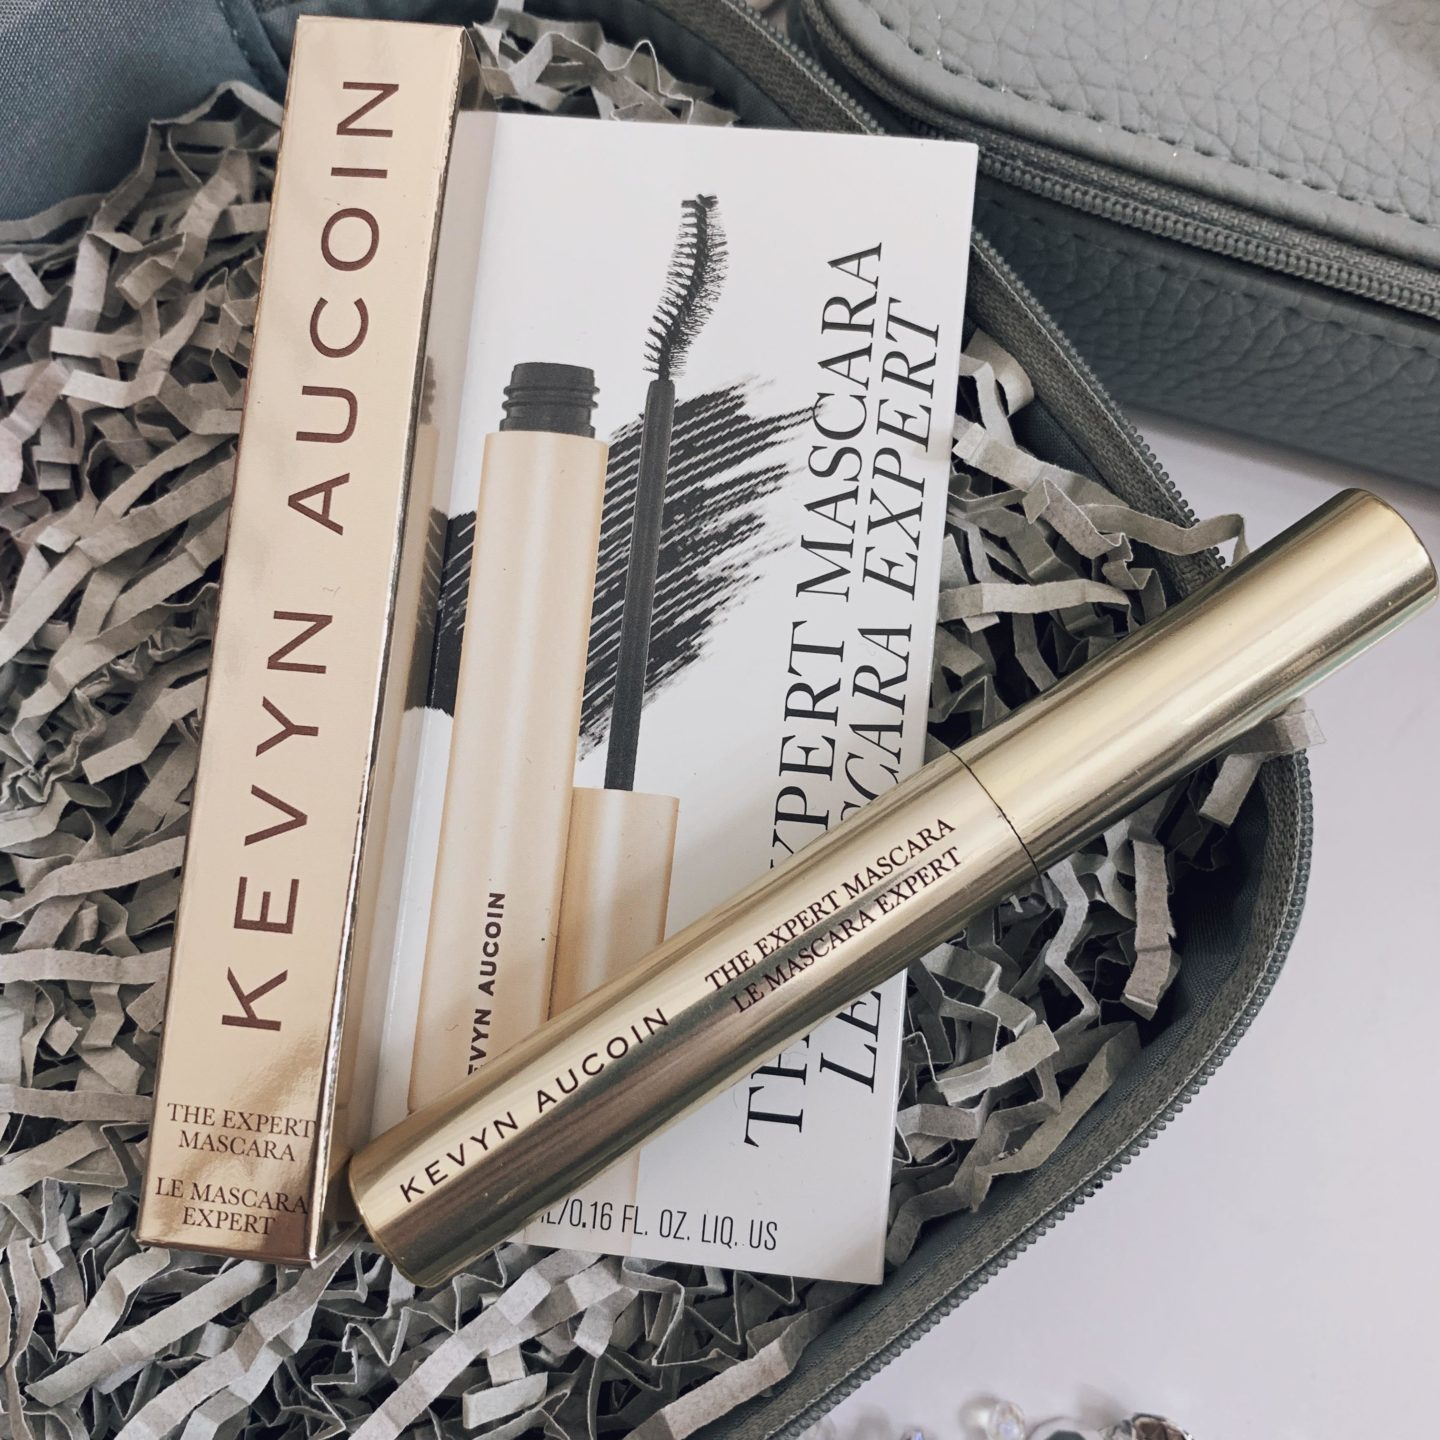 Kevyn Aucoin Discovery Bags Look Fantastic - Miss Boux